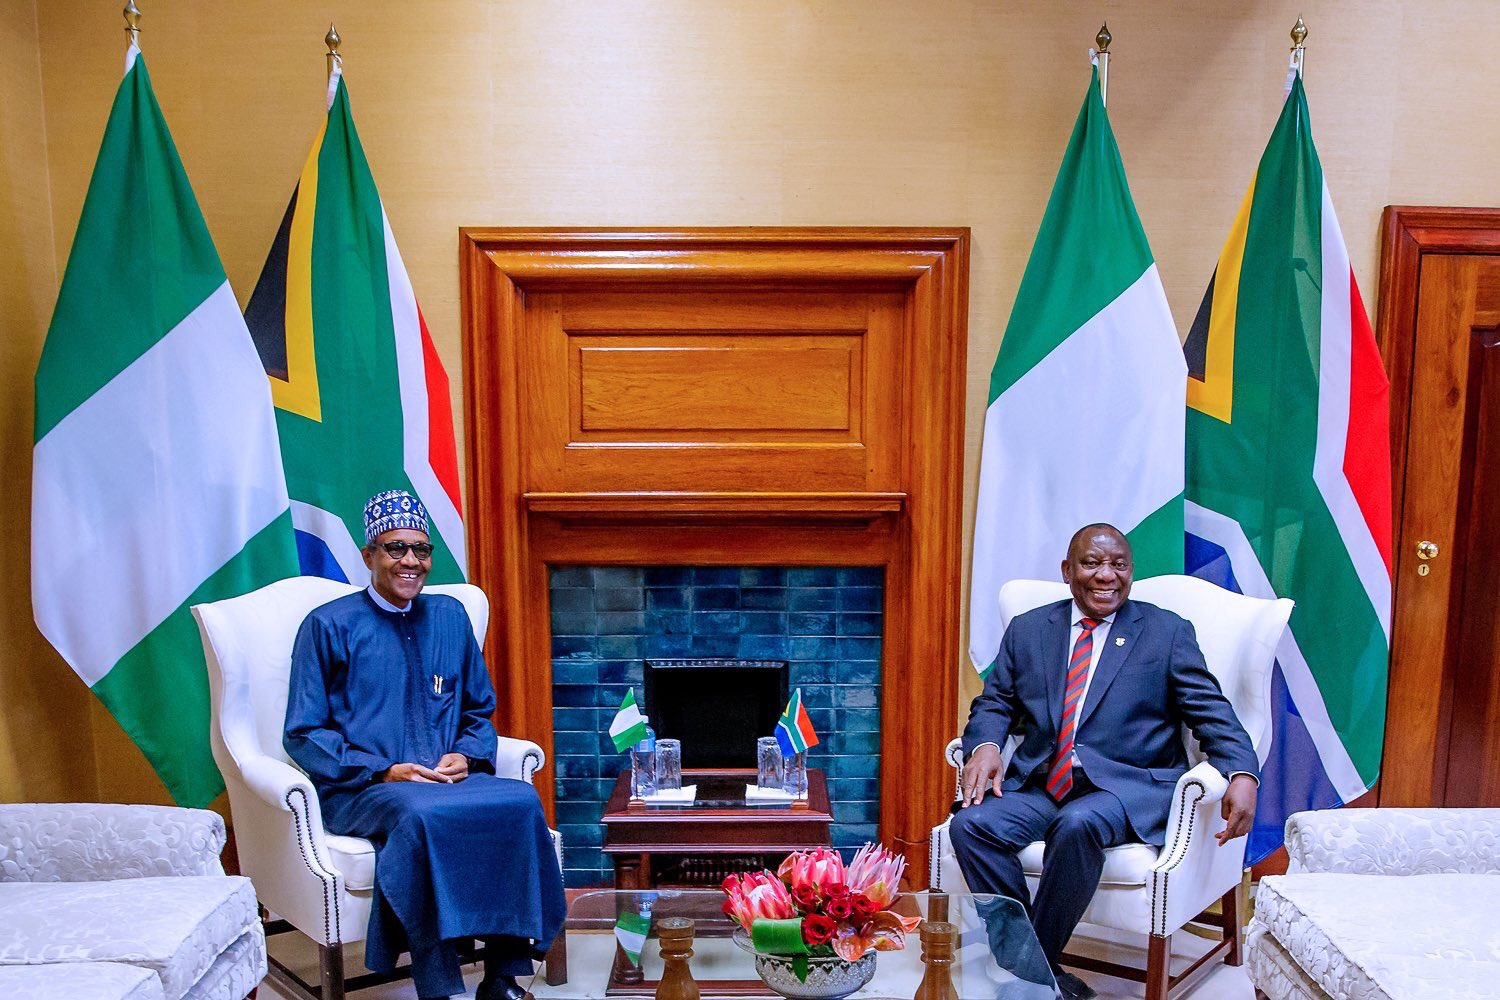 EF9dGcNW4AEekcY - Picture Story: Nigerian Government Signs 32 Bilateral Agreement With South Africa